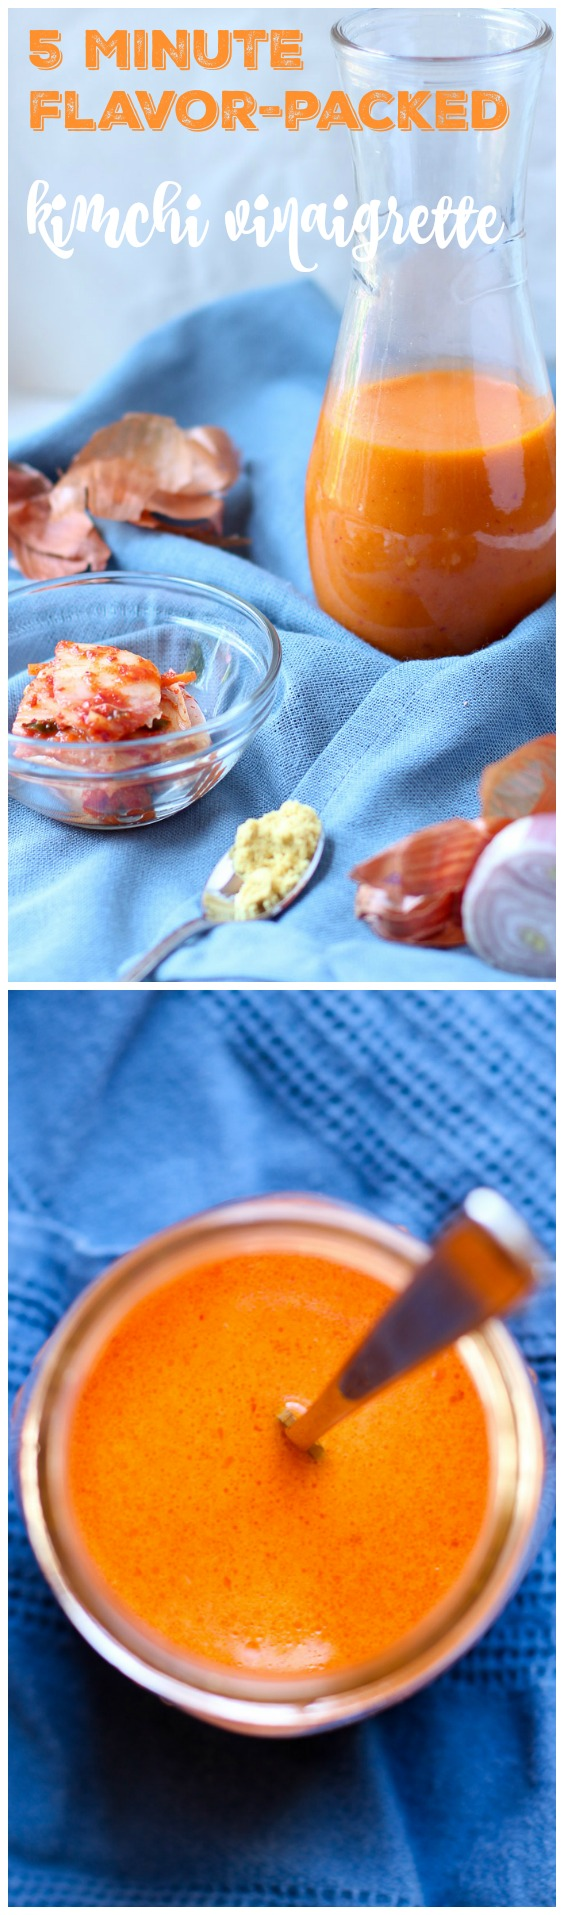 Kimchi Vinaigrette is versatile, flavor-packed, and simple to make! Kimchi juice adds a bright acidity that turns any boring salad into one that you'll crave. |www.kimchichick.com